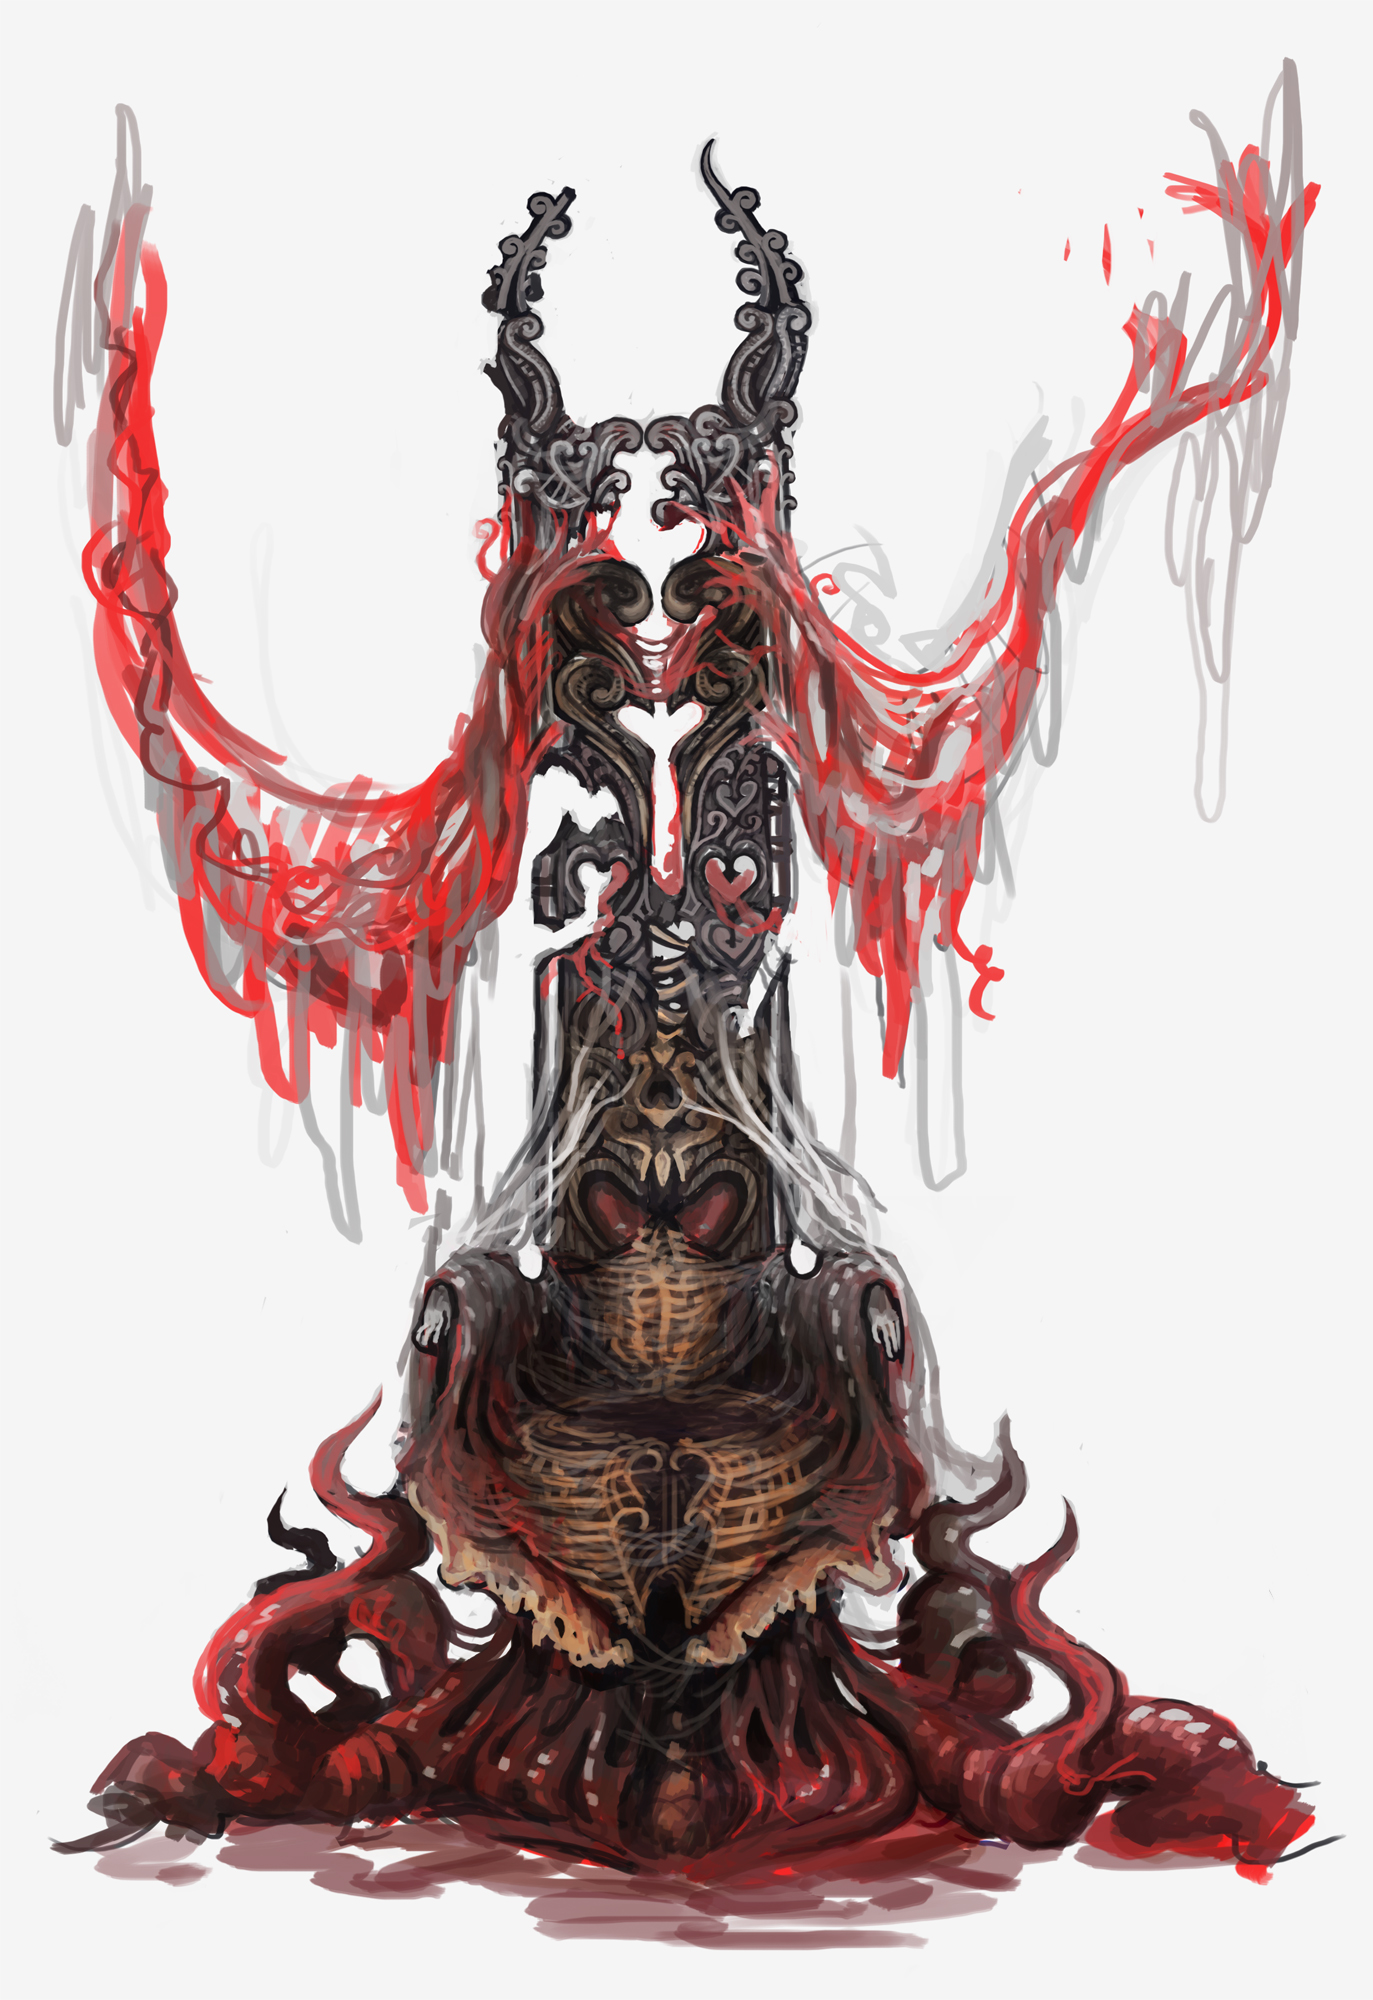 The Throne Alice Madness Returns Spicy Horse Art Test